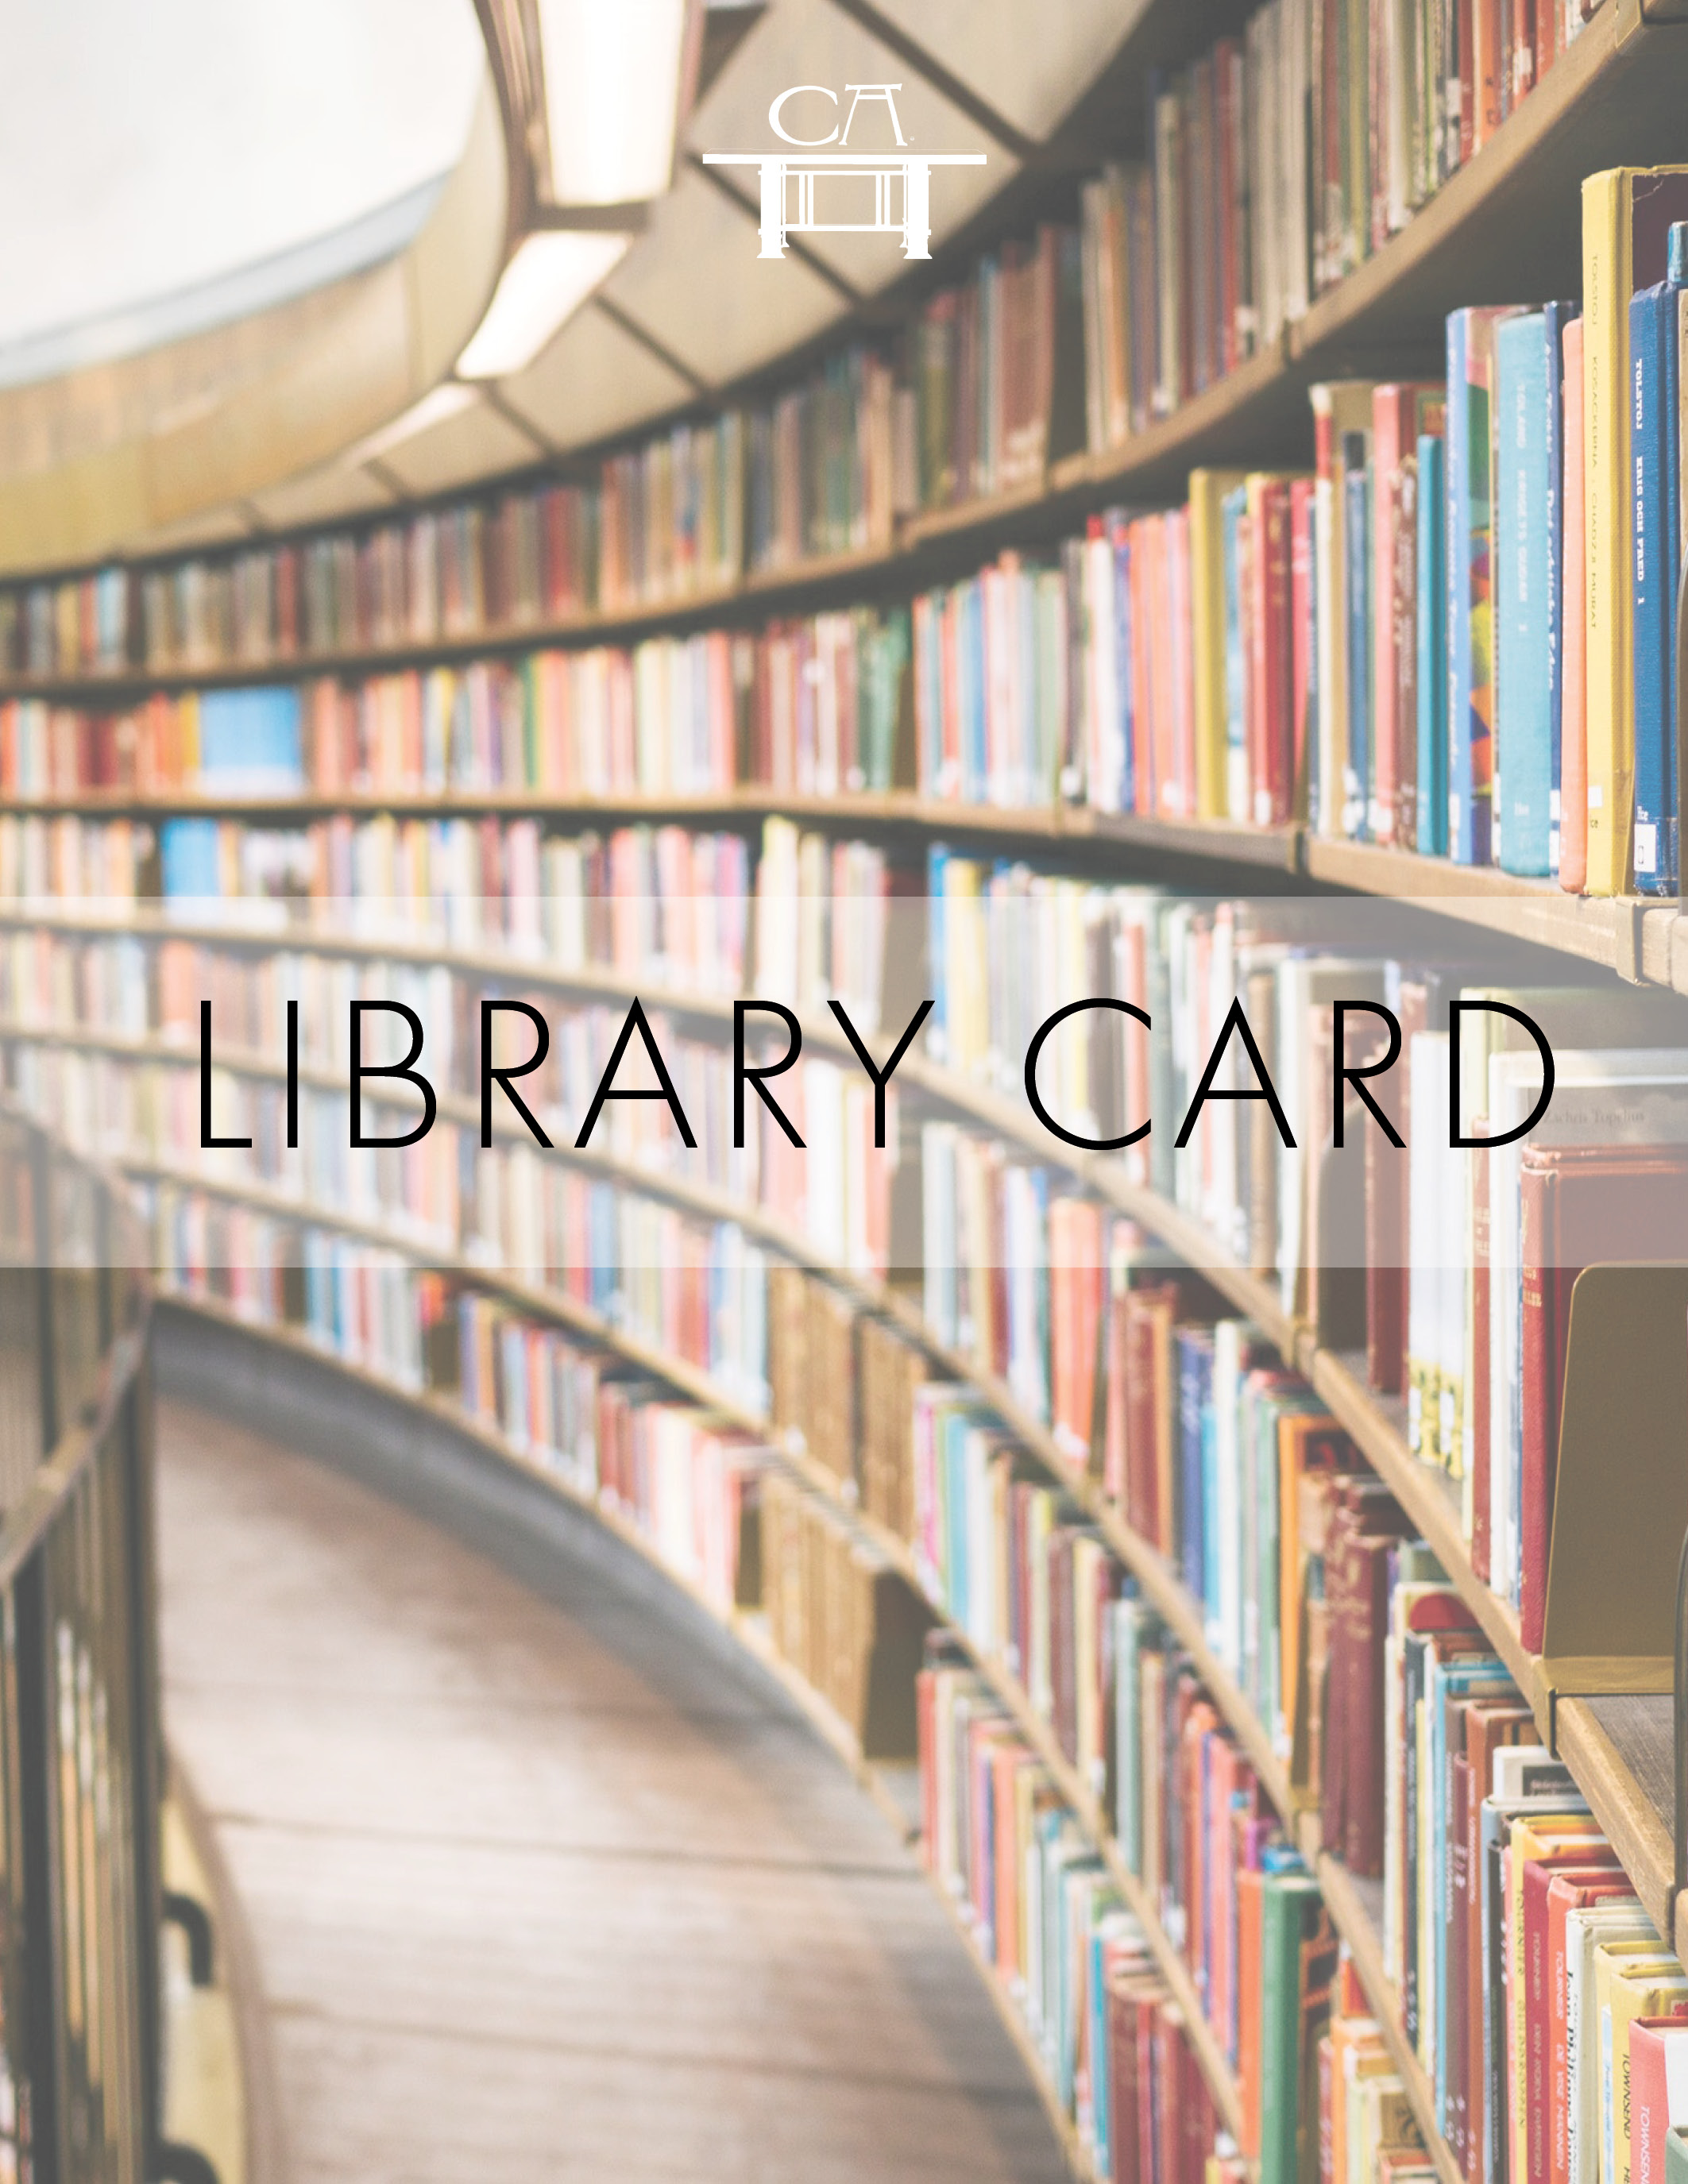 Digital Library Card - Open up more opportunities with your Cana Academy Library Card and access all our digital guides, including guides on how to lead discussions on great works of literature. Premium and master members only.